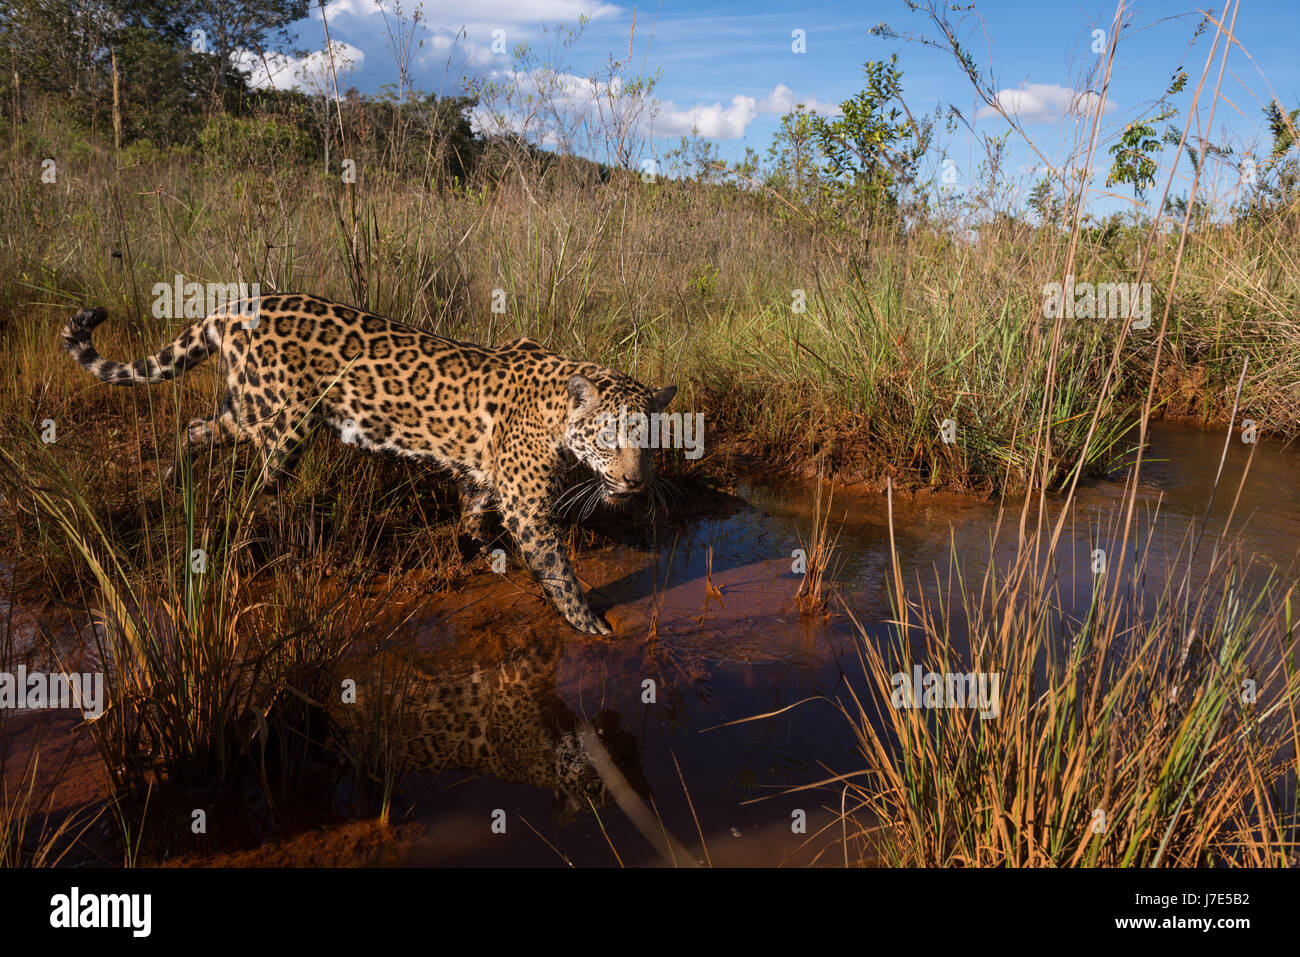 A Jaguar explores a water creek in the Brazilian Cerrado Stock Photo